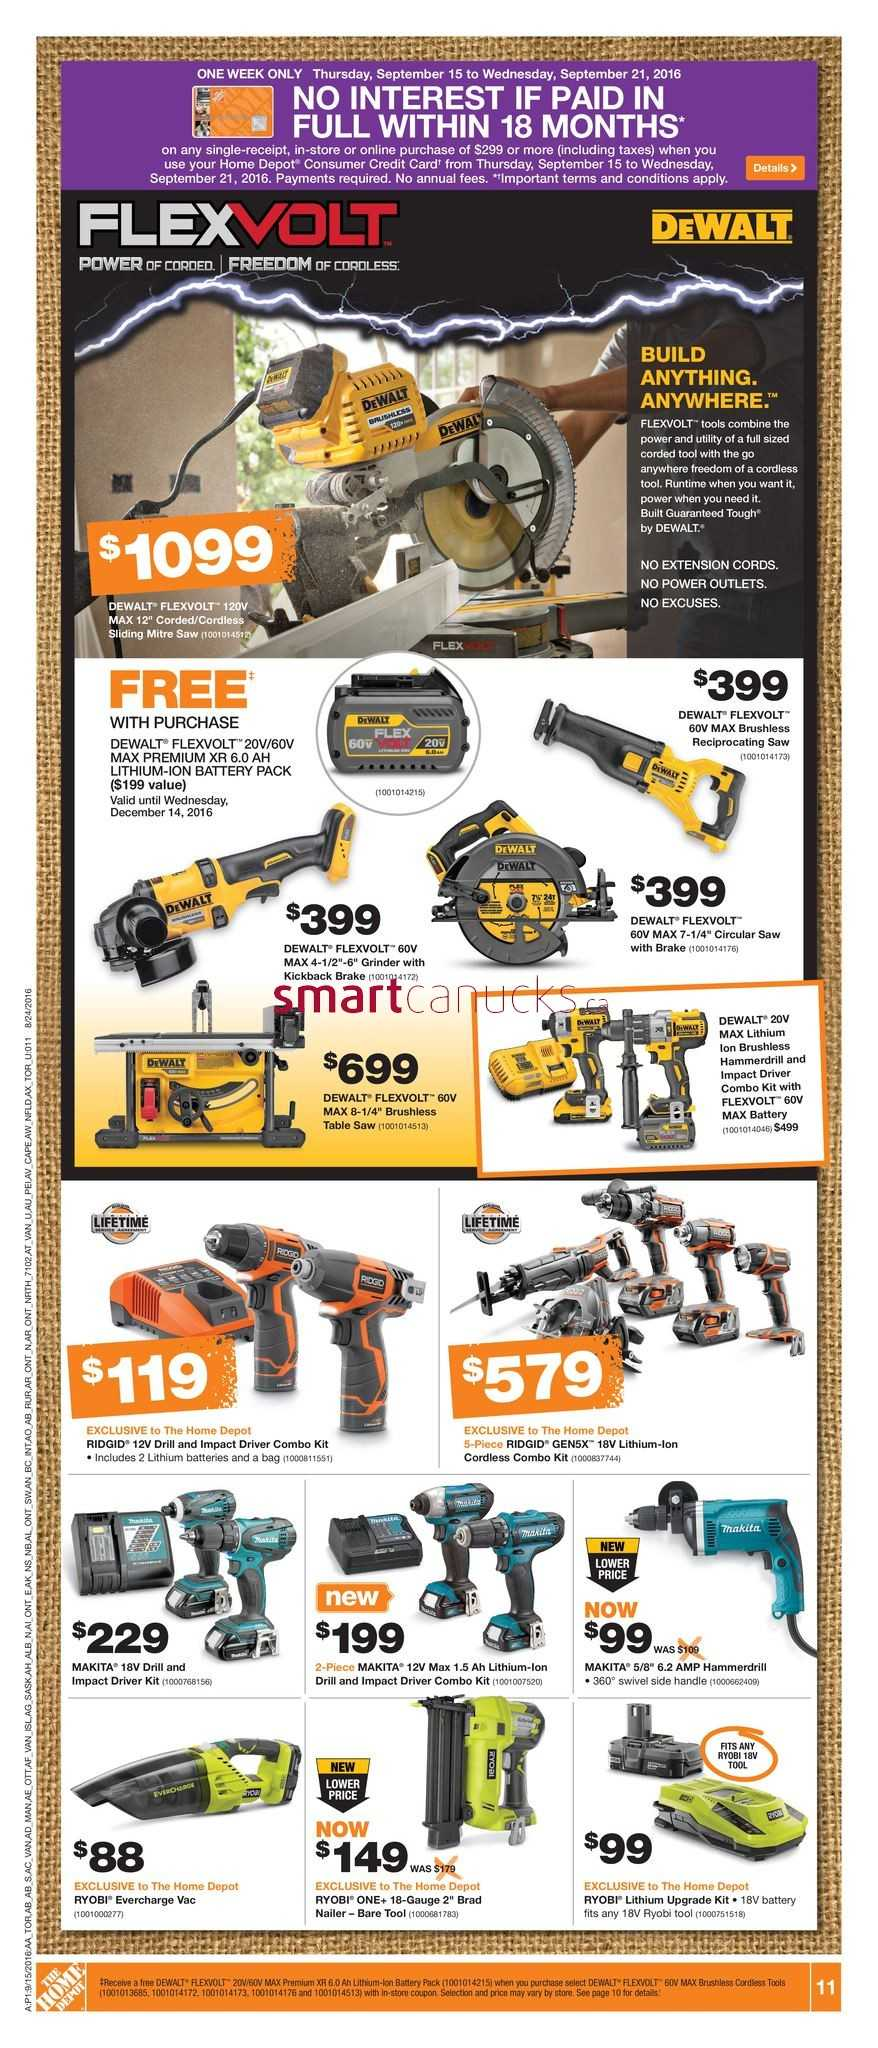 The Home Depot Inc. or Home Depot is an American home improvement supplies retailing company that sells tools, construction products, and services.